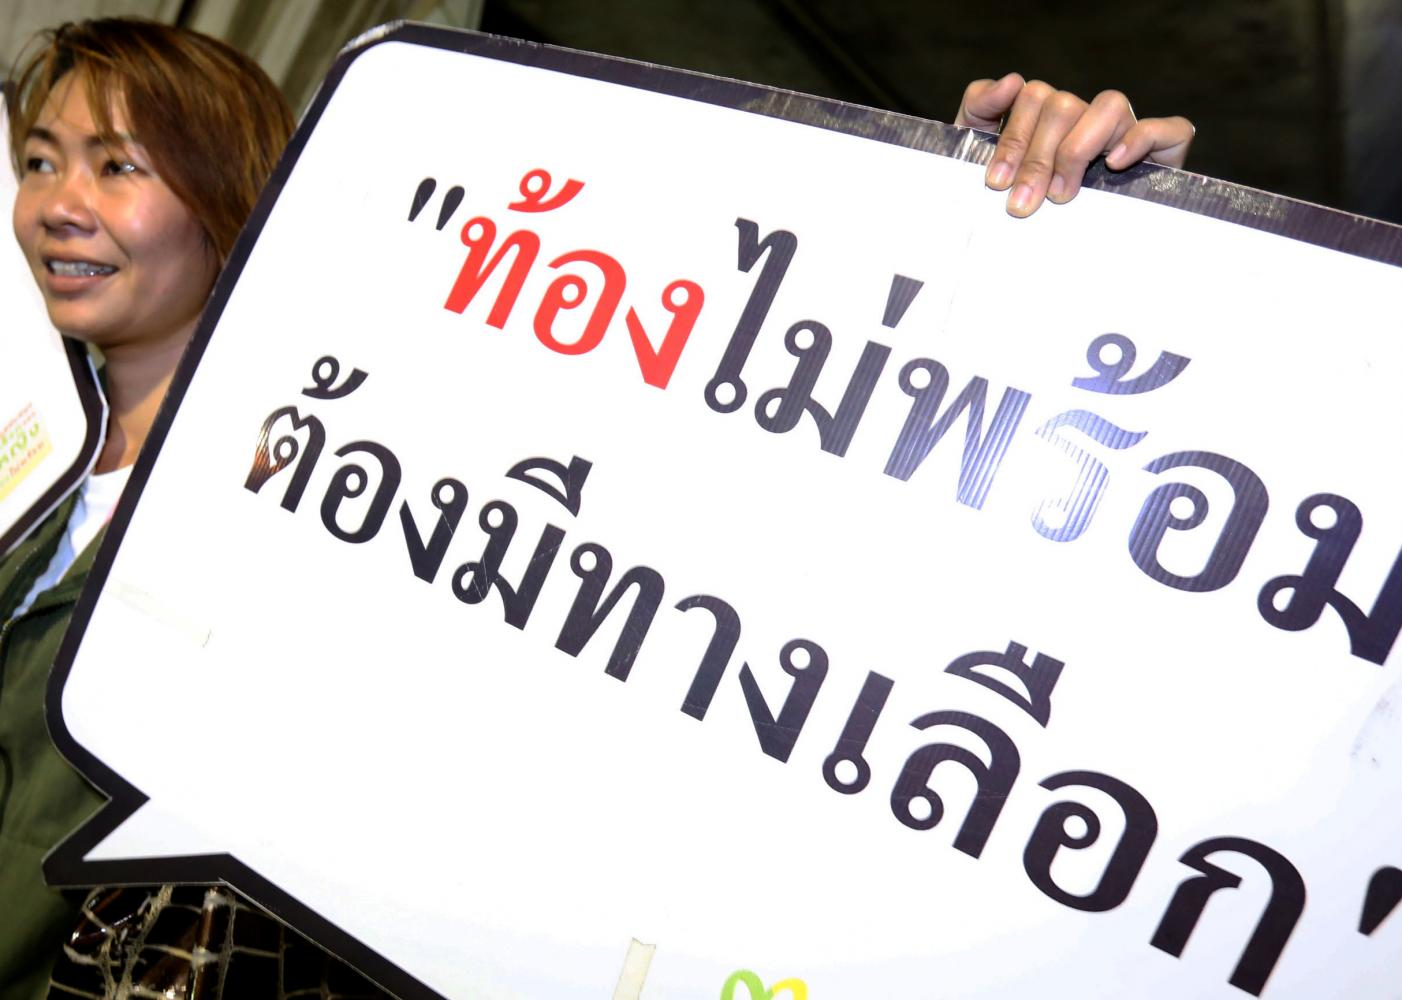 A campaigner holds a placard saying women with unplanned pregnancies have the right to choose. She calls for safe and legal abortions as a public health right. (Bangkok Post file photo)